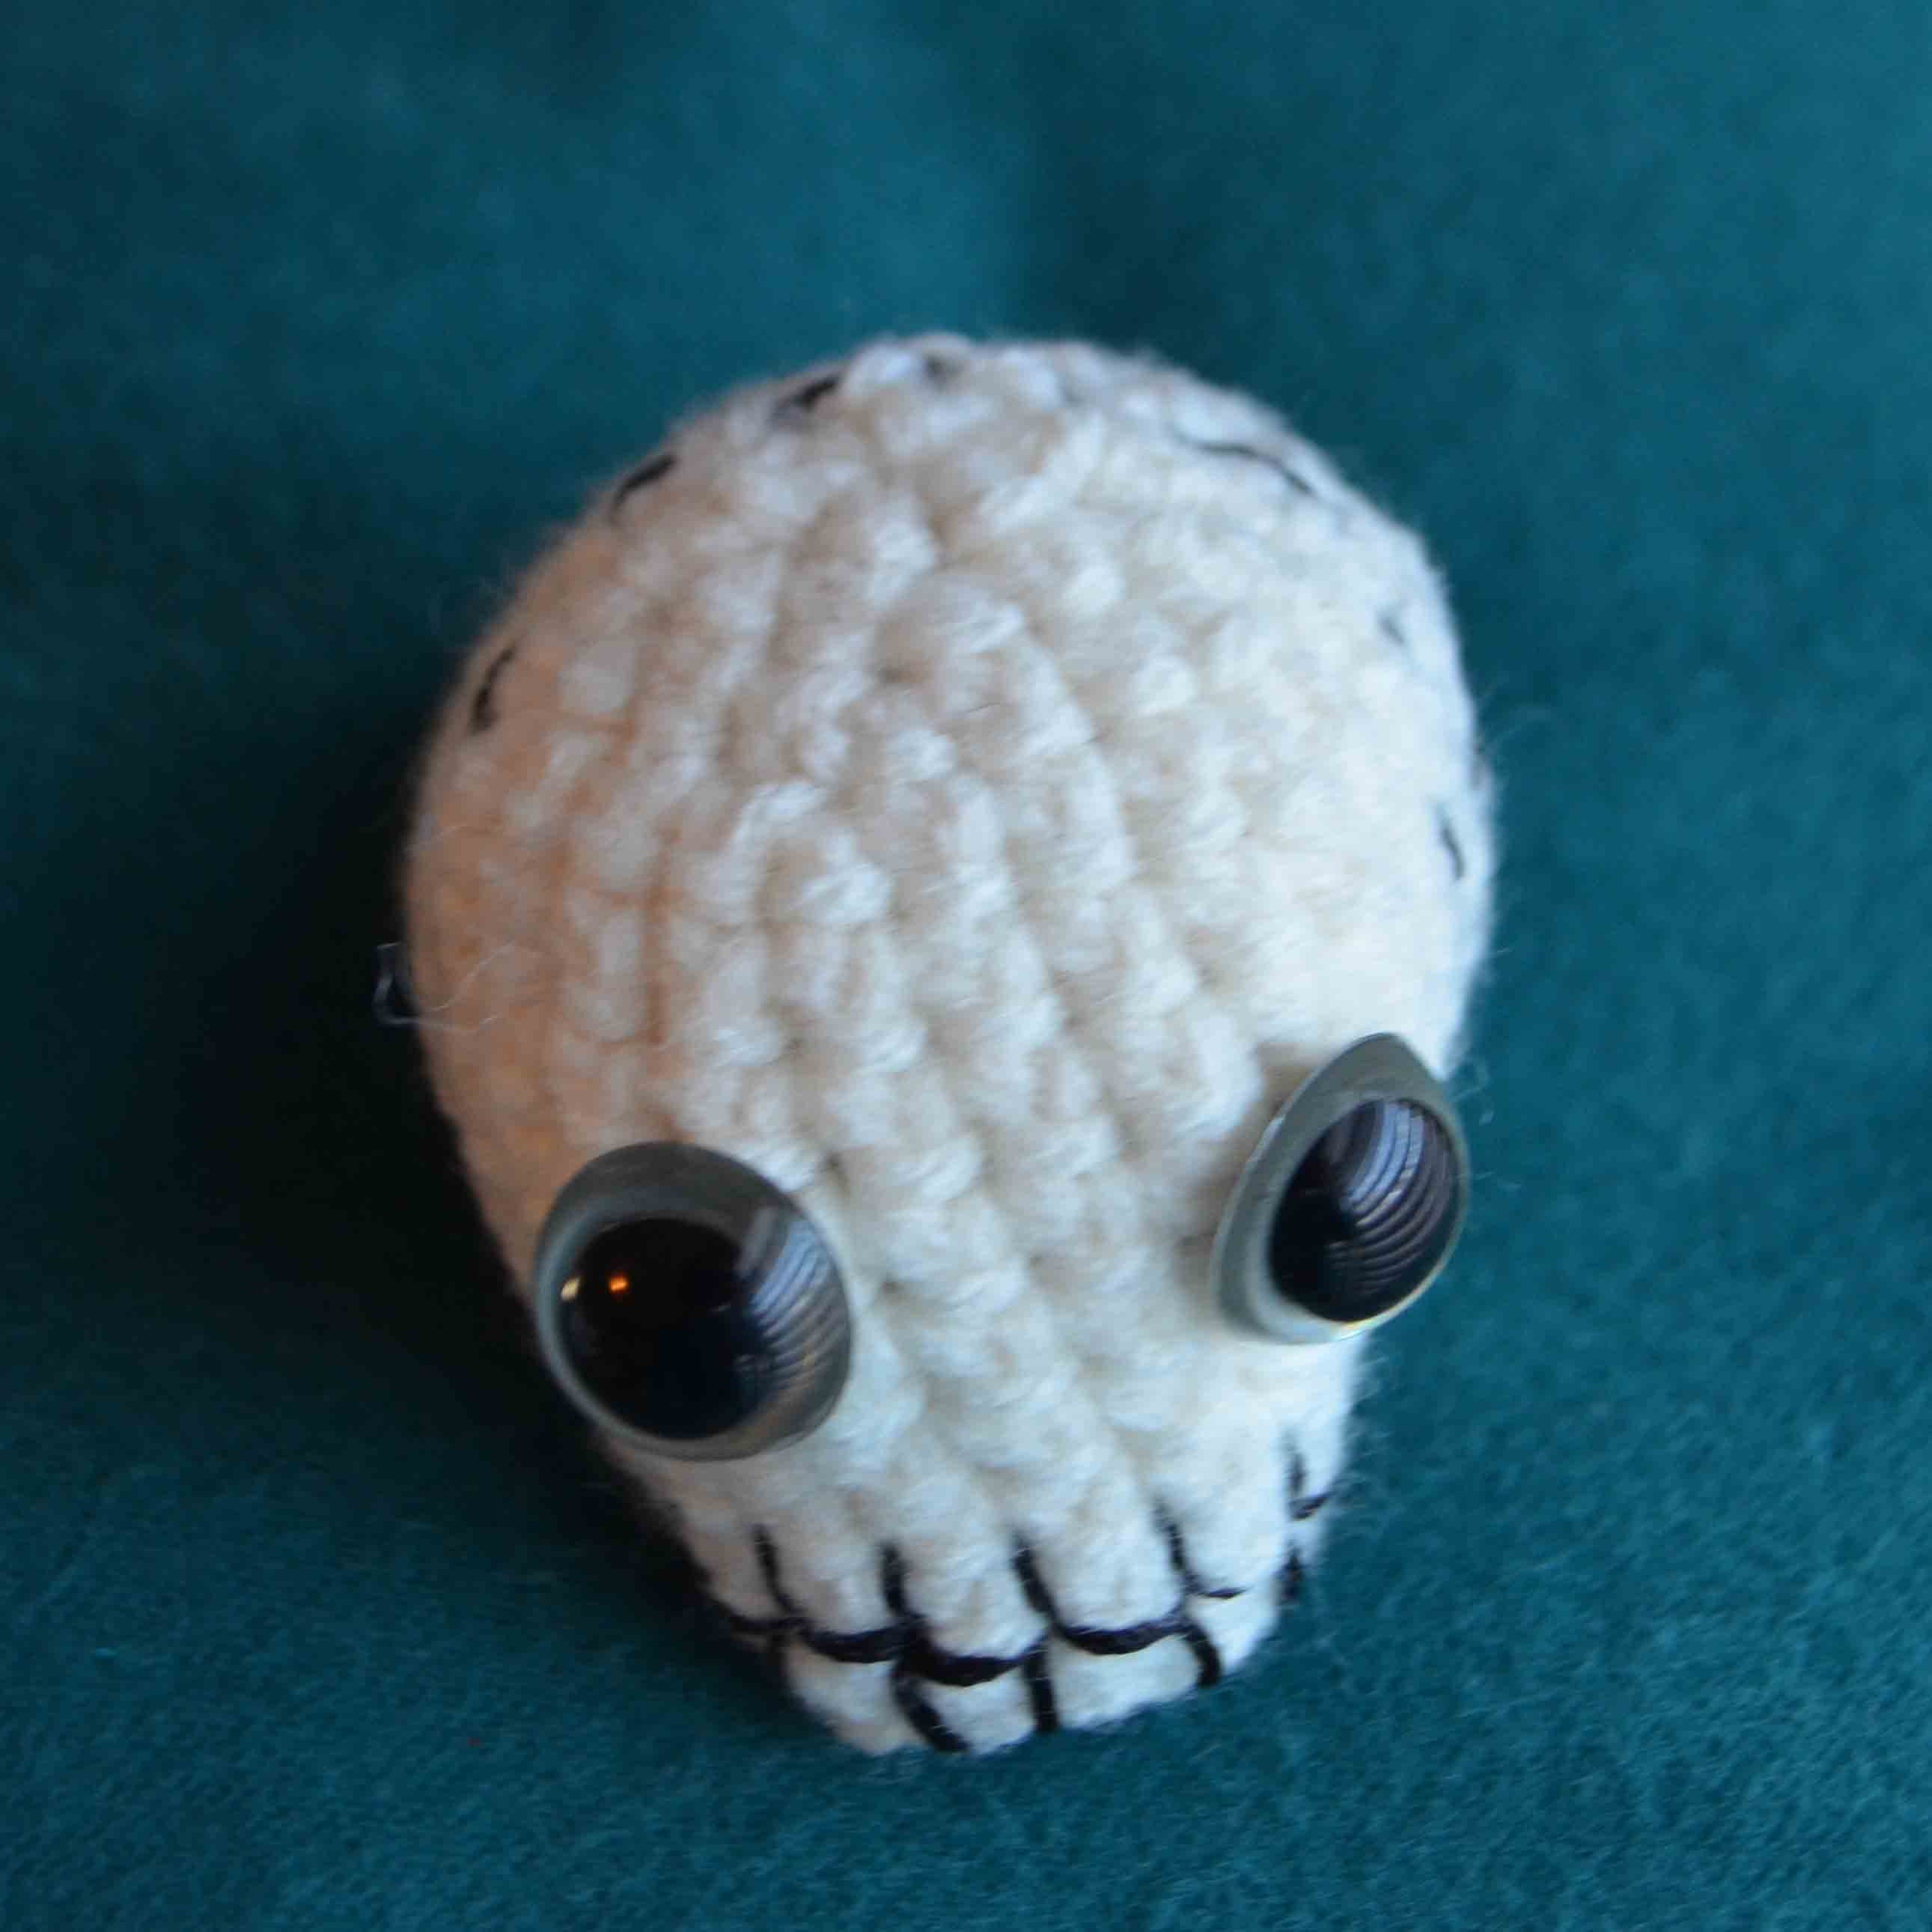 Skull Pincushion (Amigurumi Pattern) | DIY Geekery